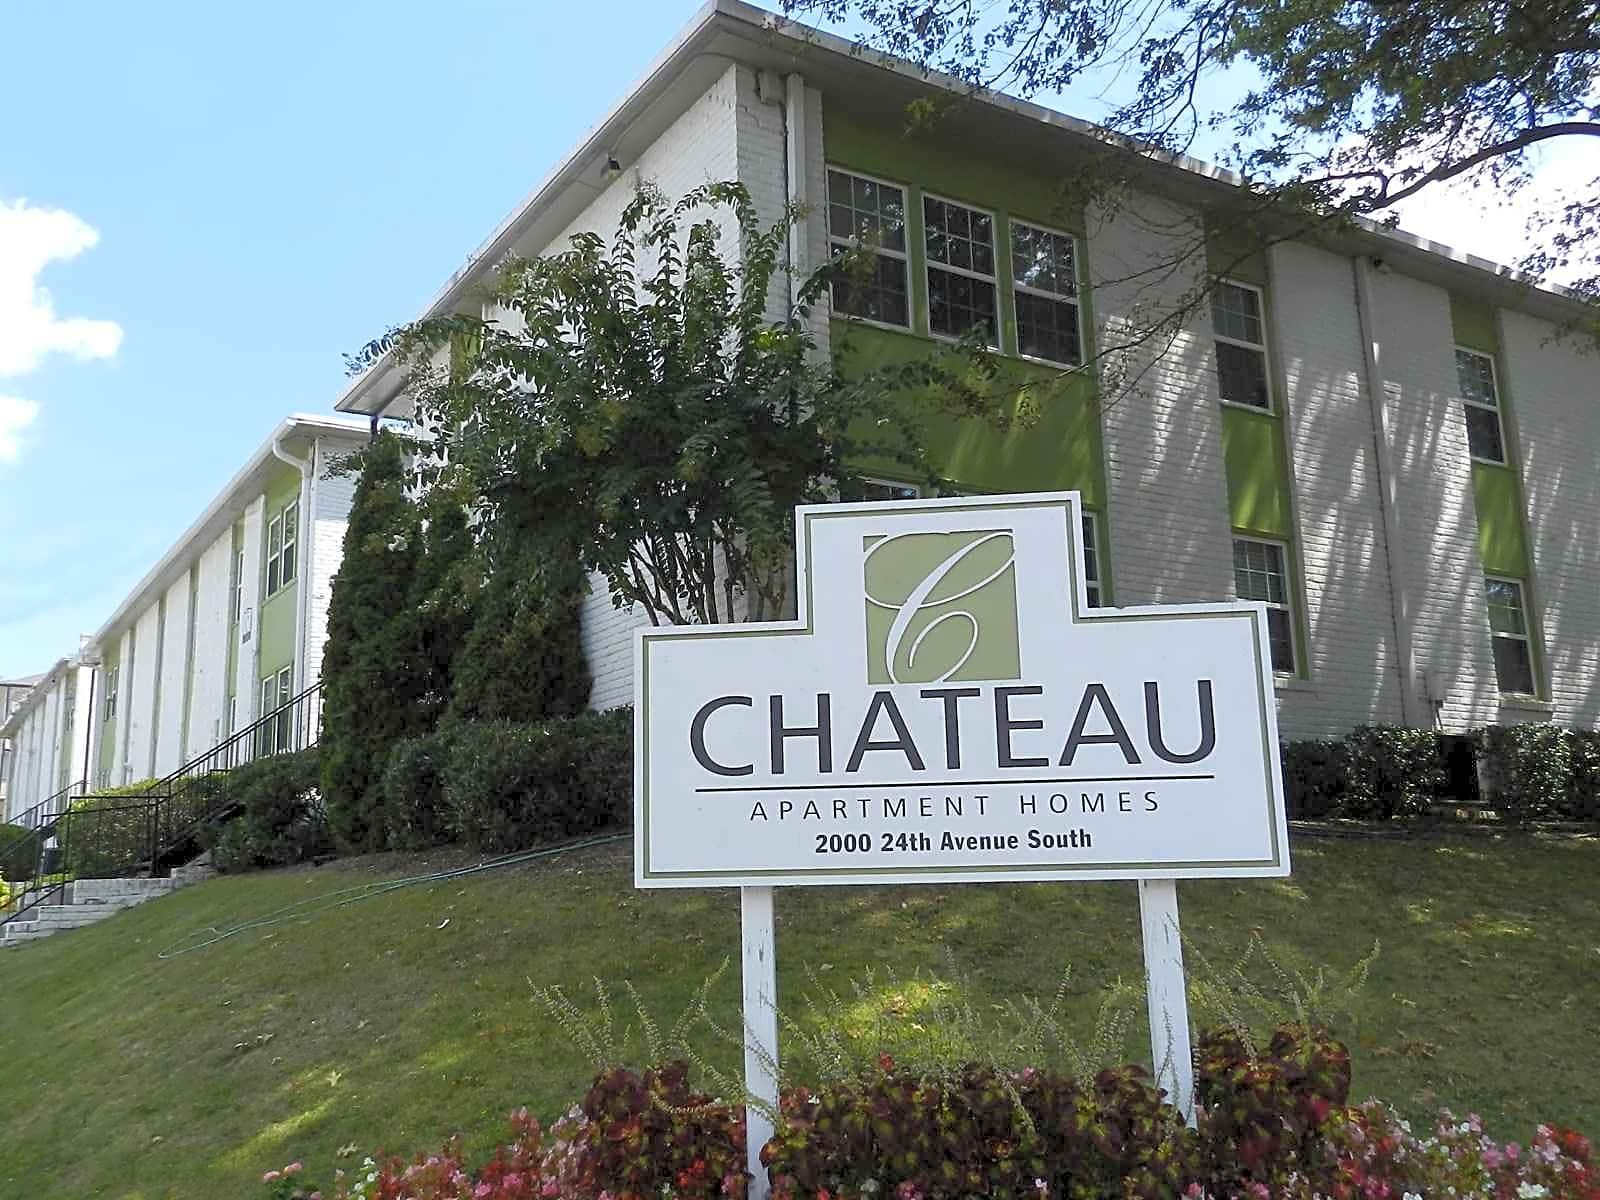 Chateau Apartments  Nashville, Tn 37212. Small Business Classification. Dodge Dealership Dallas Texas. Laptops For Small Business Plc Remote Access. Sharepoint Training Classes Laser Lipo Chin. Automated Usability Testing Degree In Drama. Travel Abroad Programs For High School Students. American International University Athletics. Online Public Relations And Marketing Degree